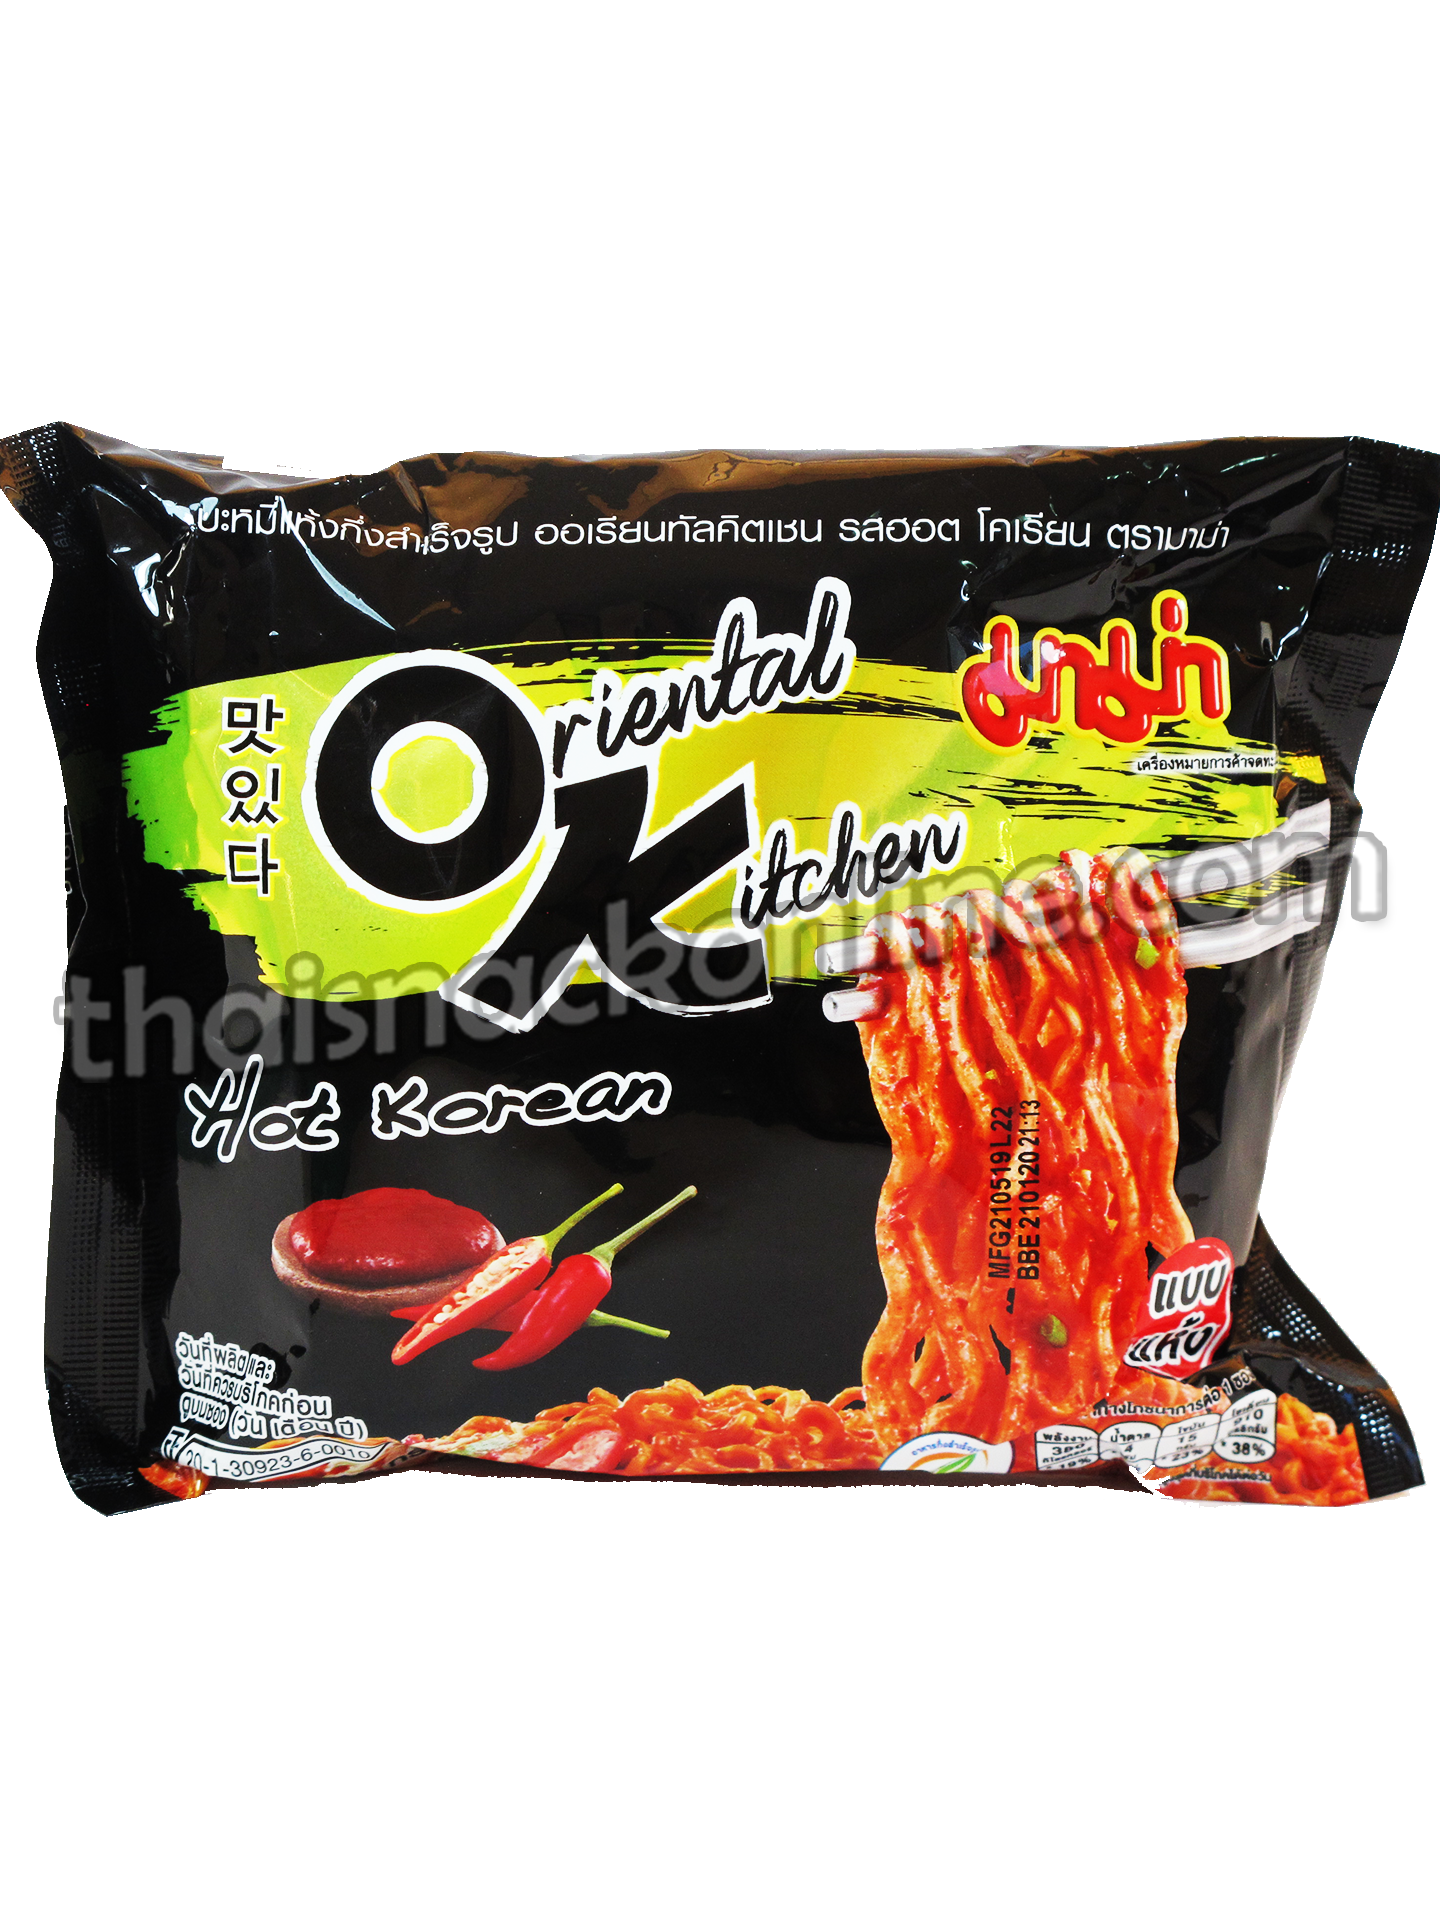 oriental kitchen hot korean 85g thaisnackonline dried vegetables instant recipes light recipes oriental kitchen hot korean 85g